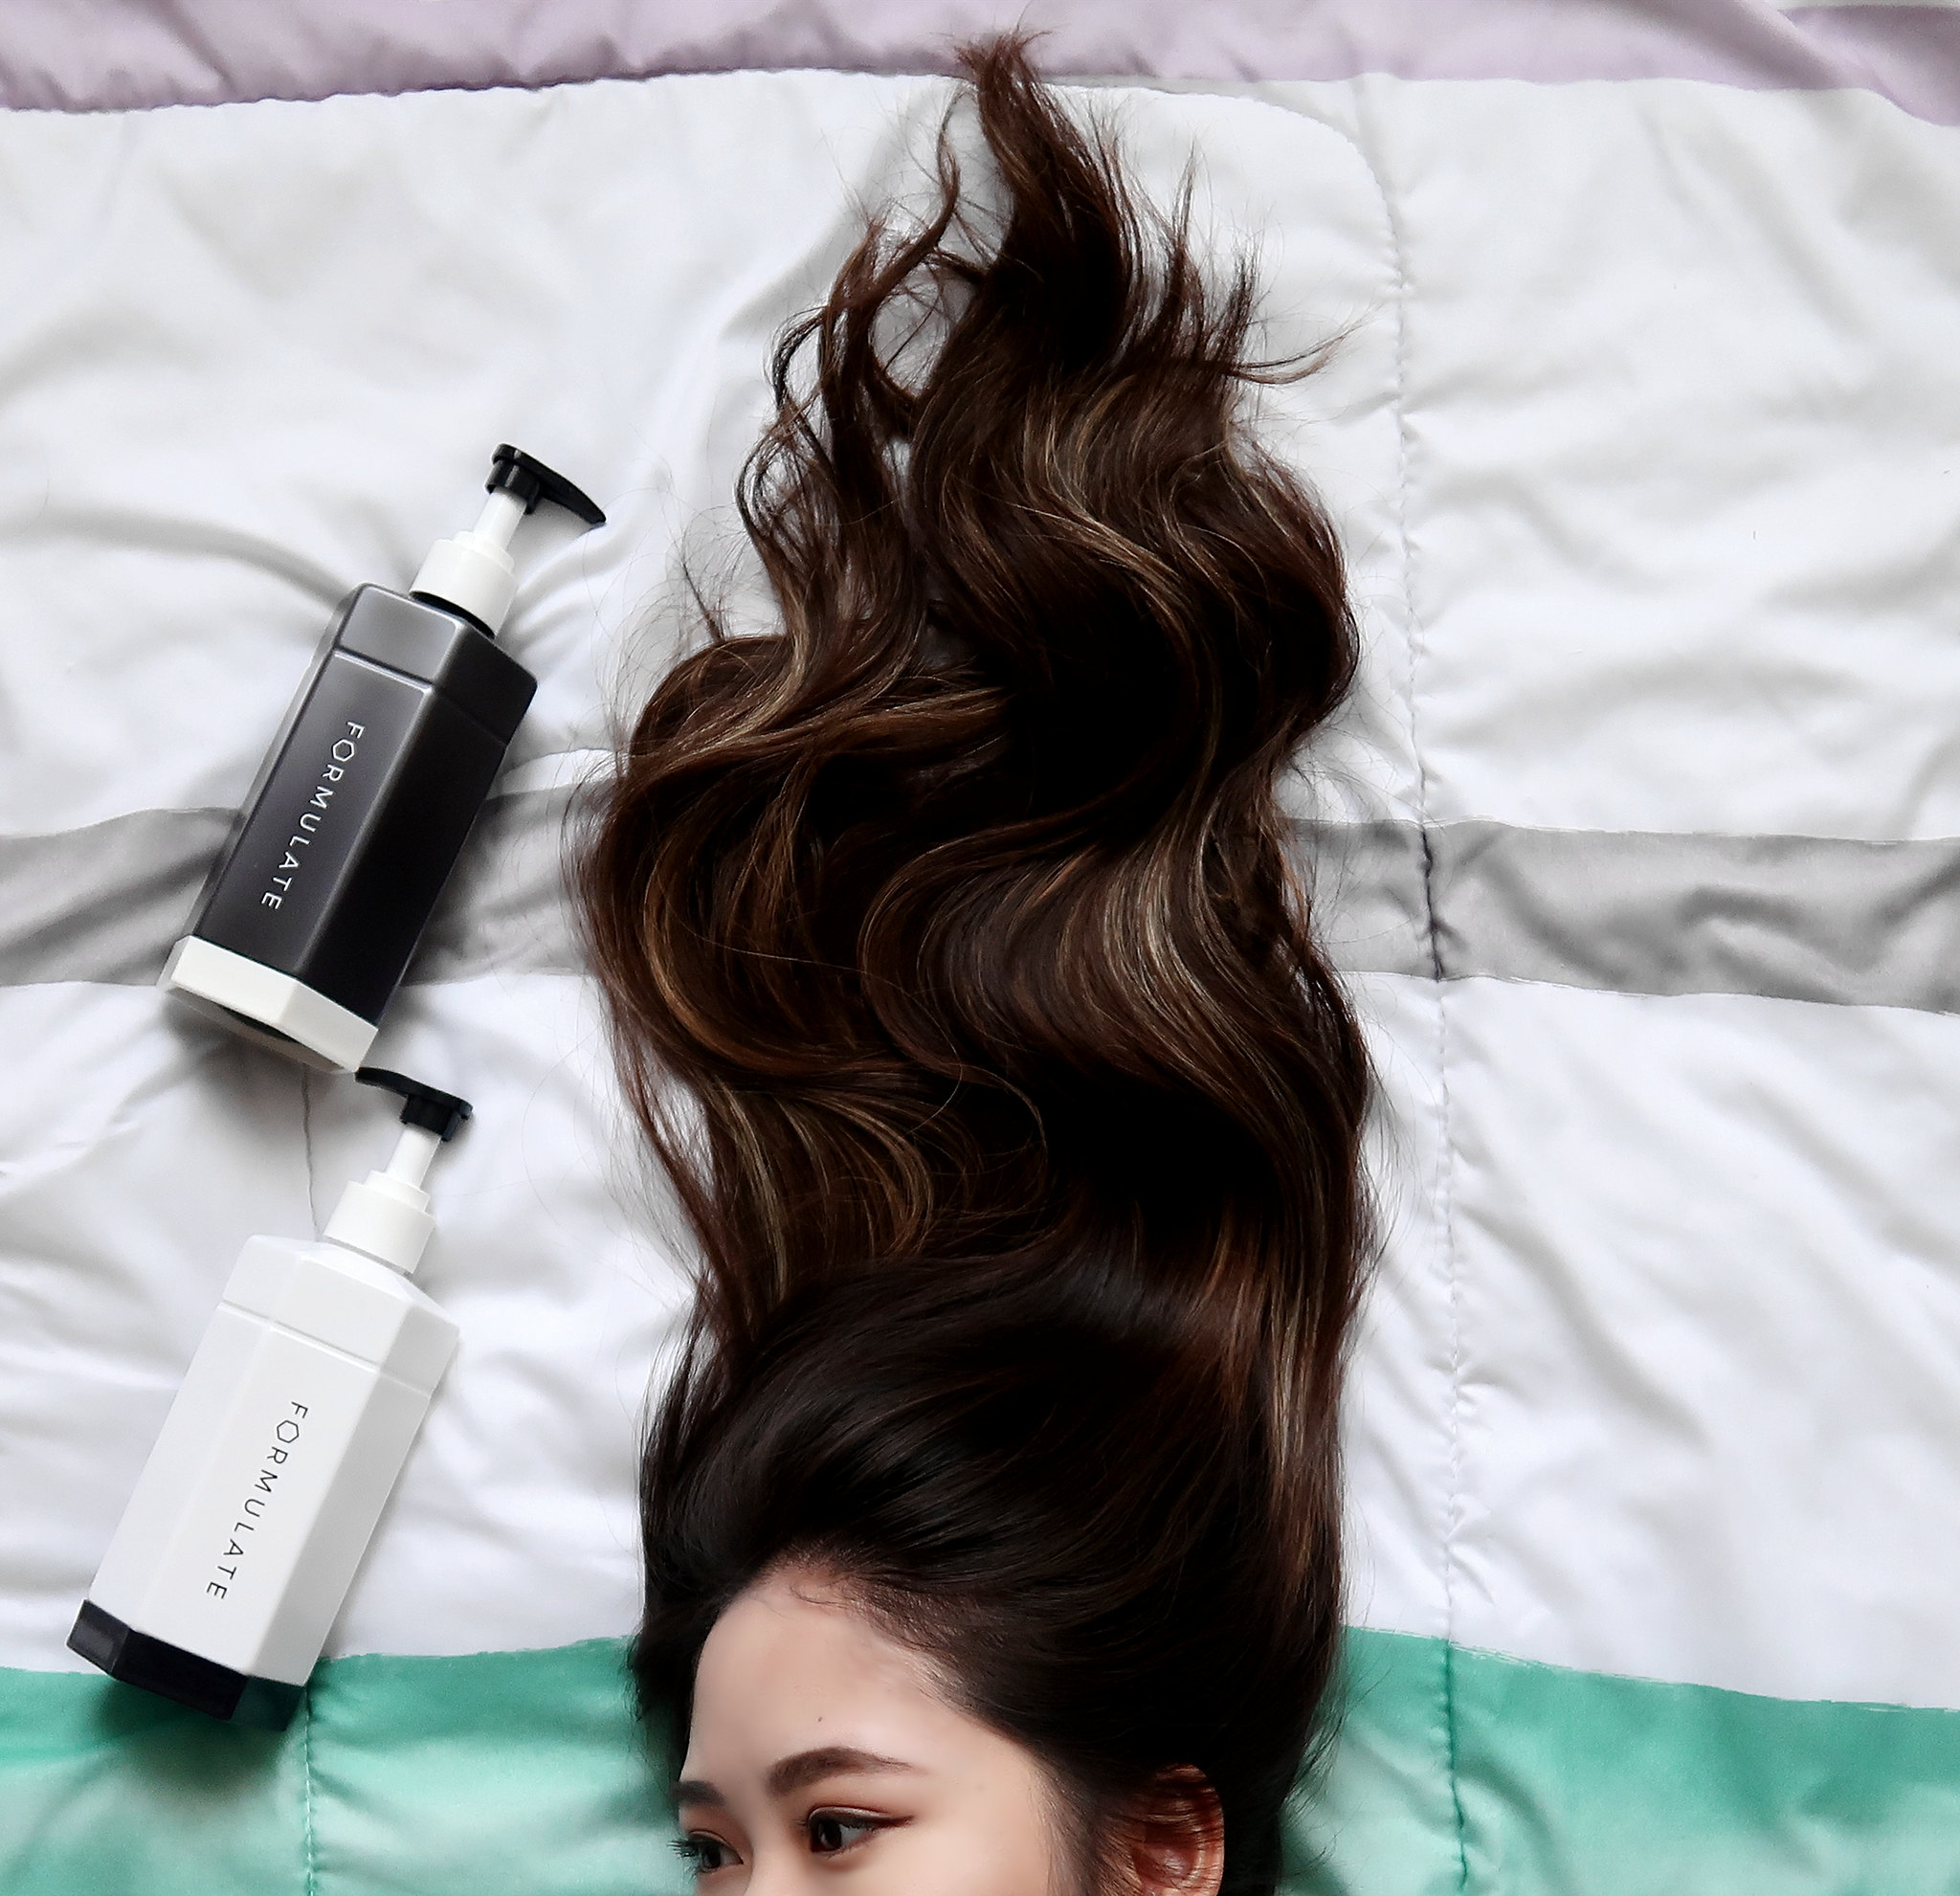 3-formulate-hair-haircare-sponsored-collaboration-ad-itselizabethtran-clothestoyouuu